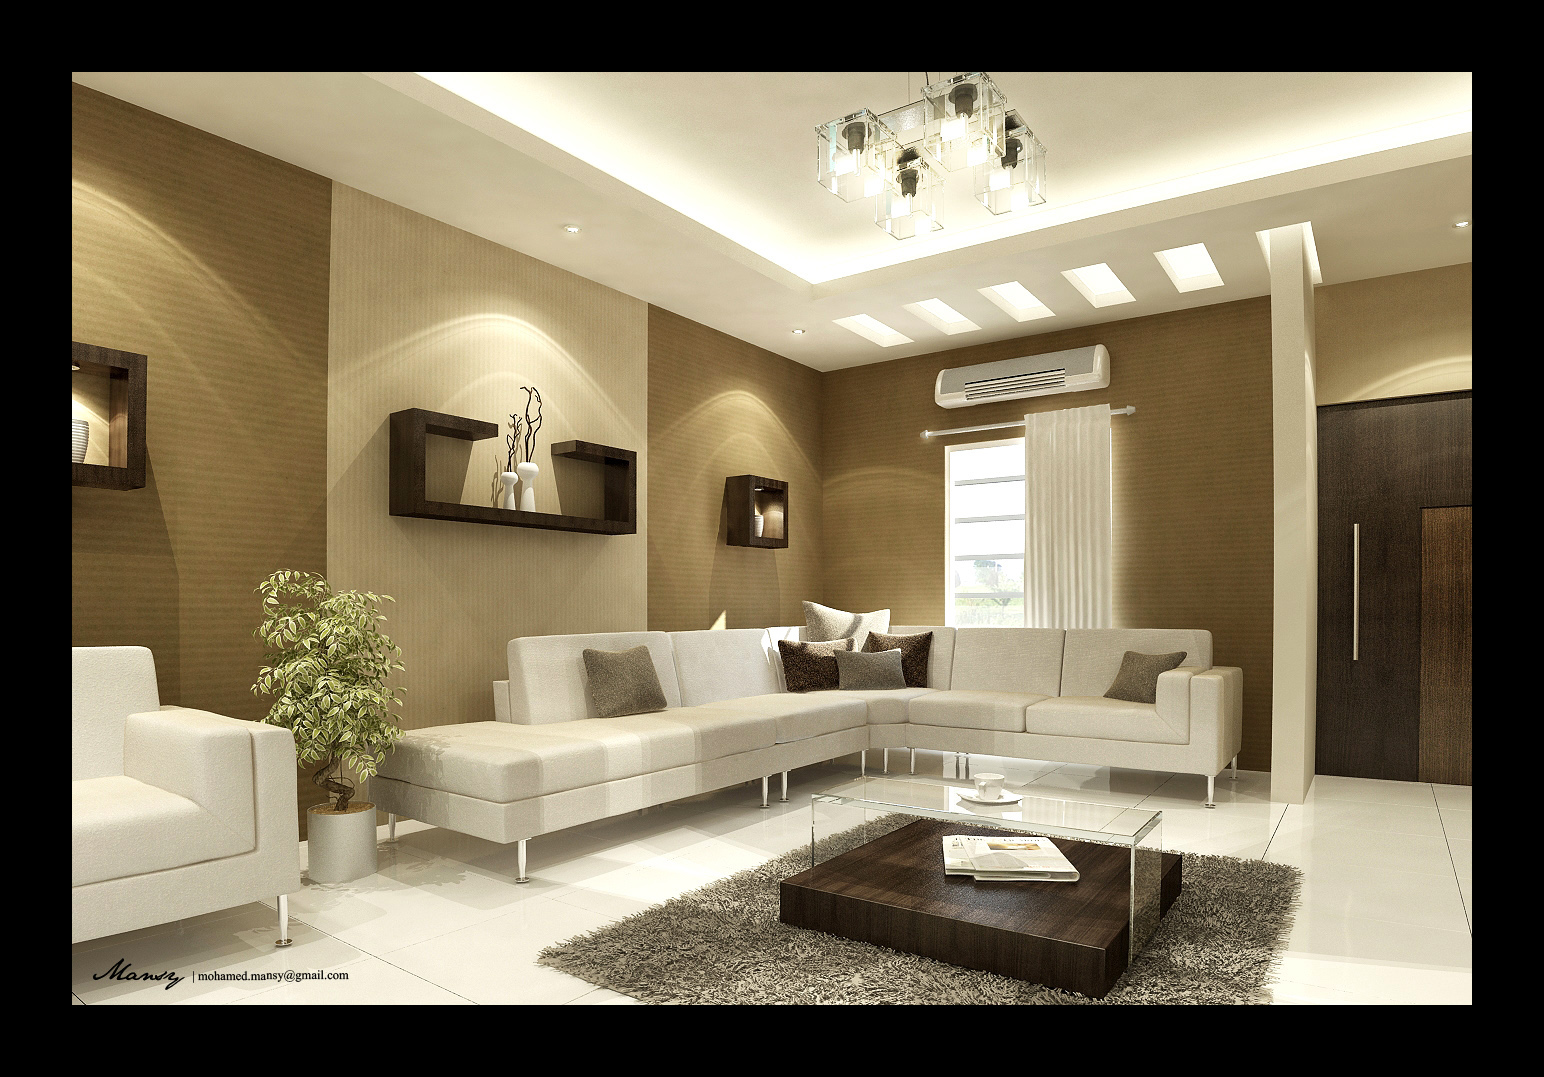 Bungalows Design Ideas for Renovating Remodeling and